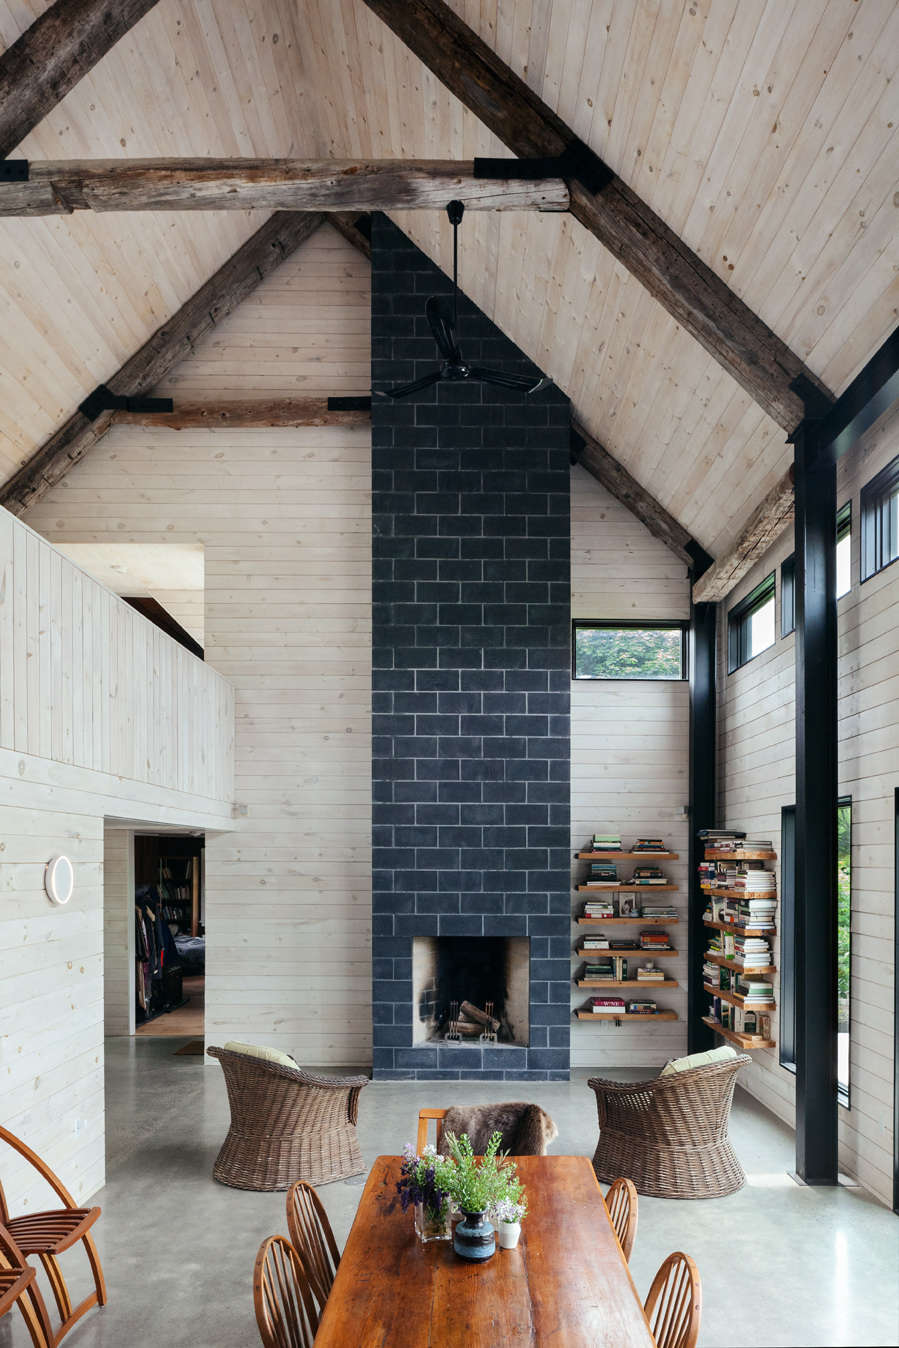 A dramatic fireplace spanning two floors sits directly across from the kitchen. The surround is made up of charcoal-colored concrete blocks.